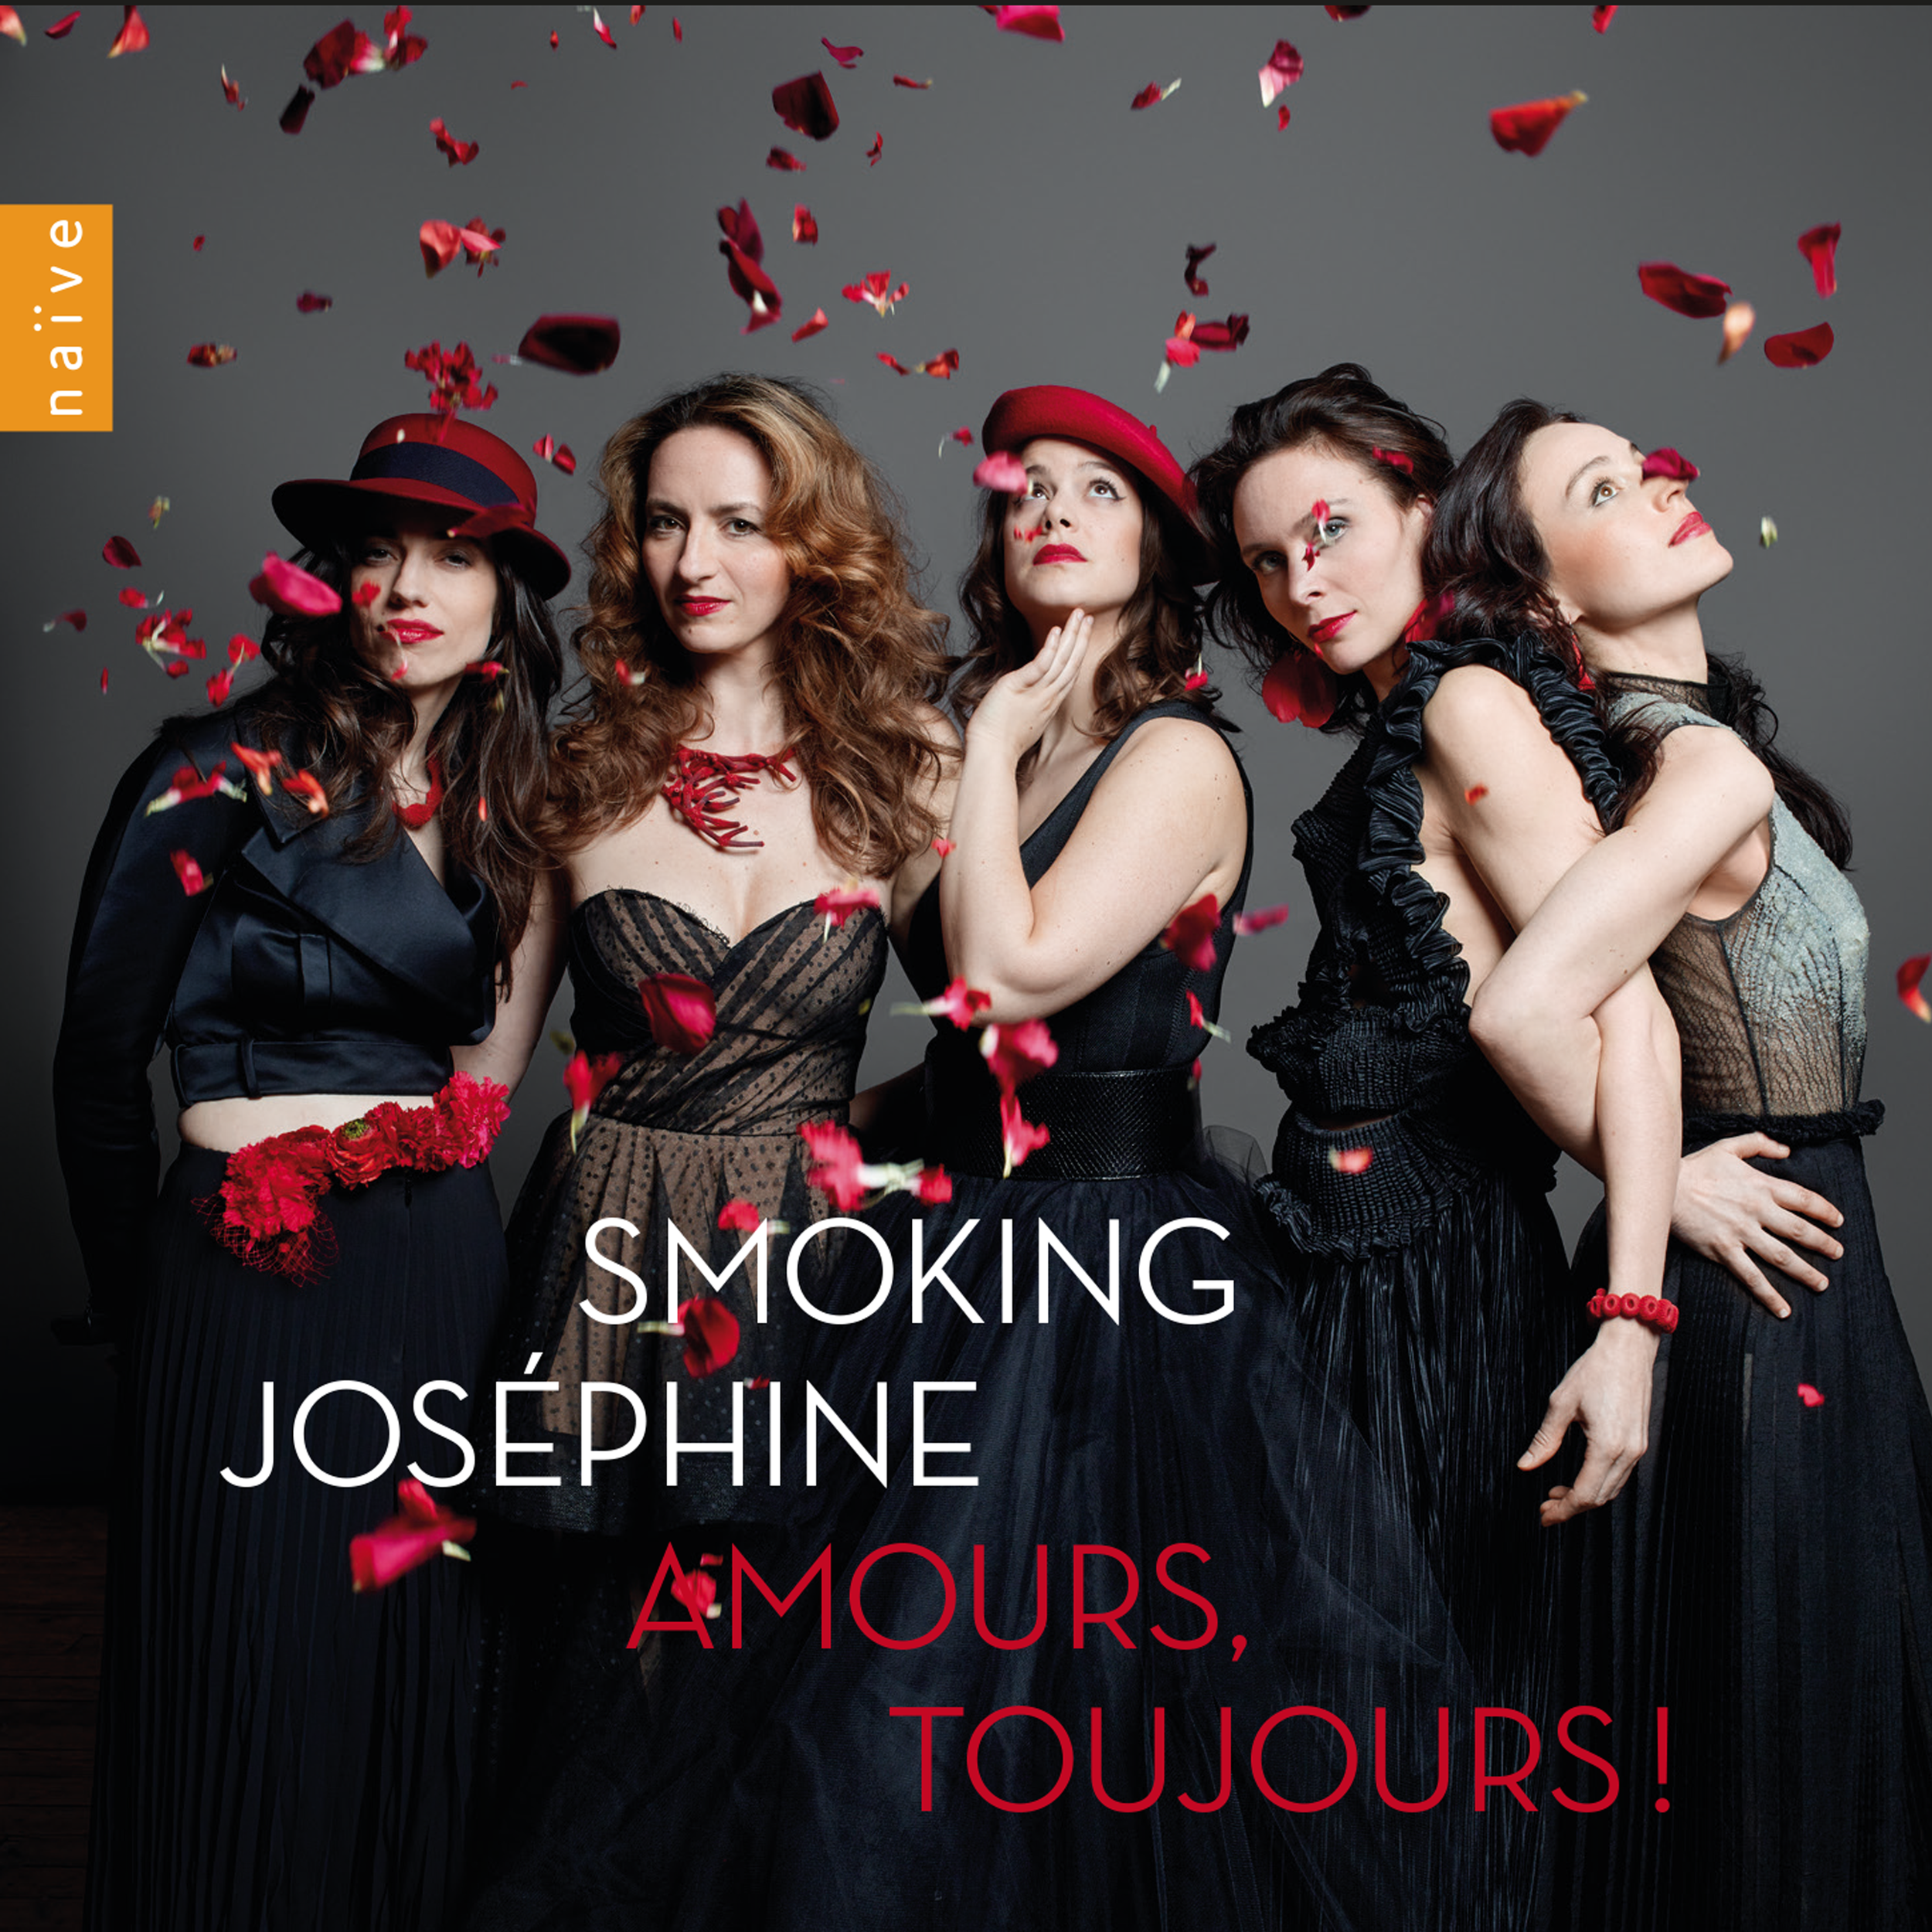 V5469 K Smoking Joséphine Amours, toujours !.png